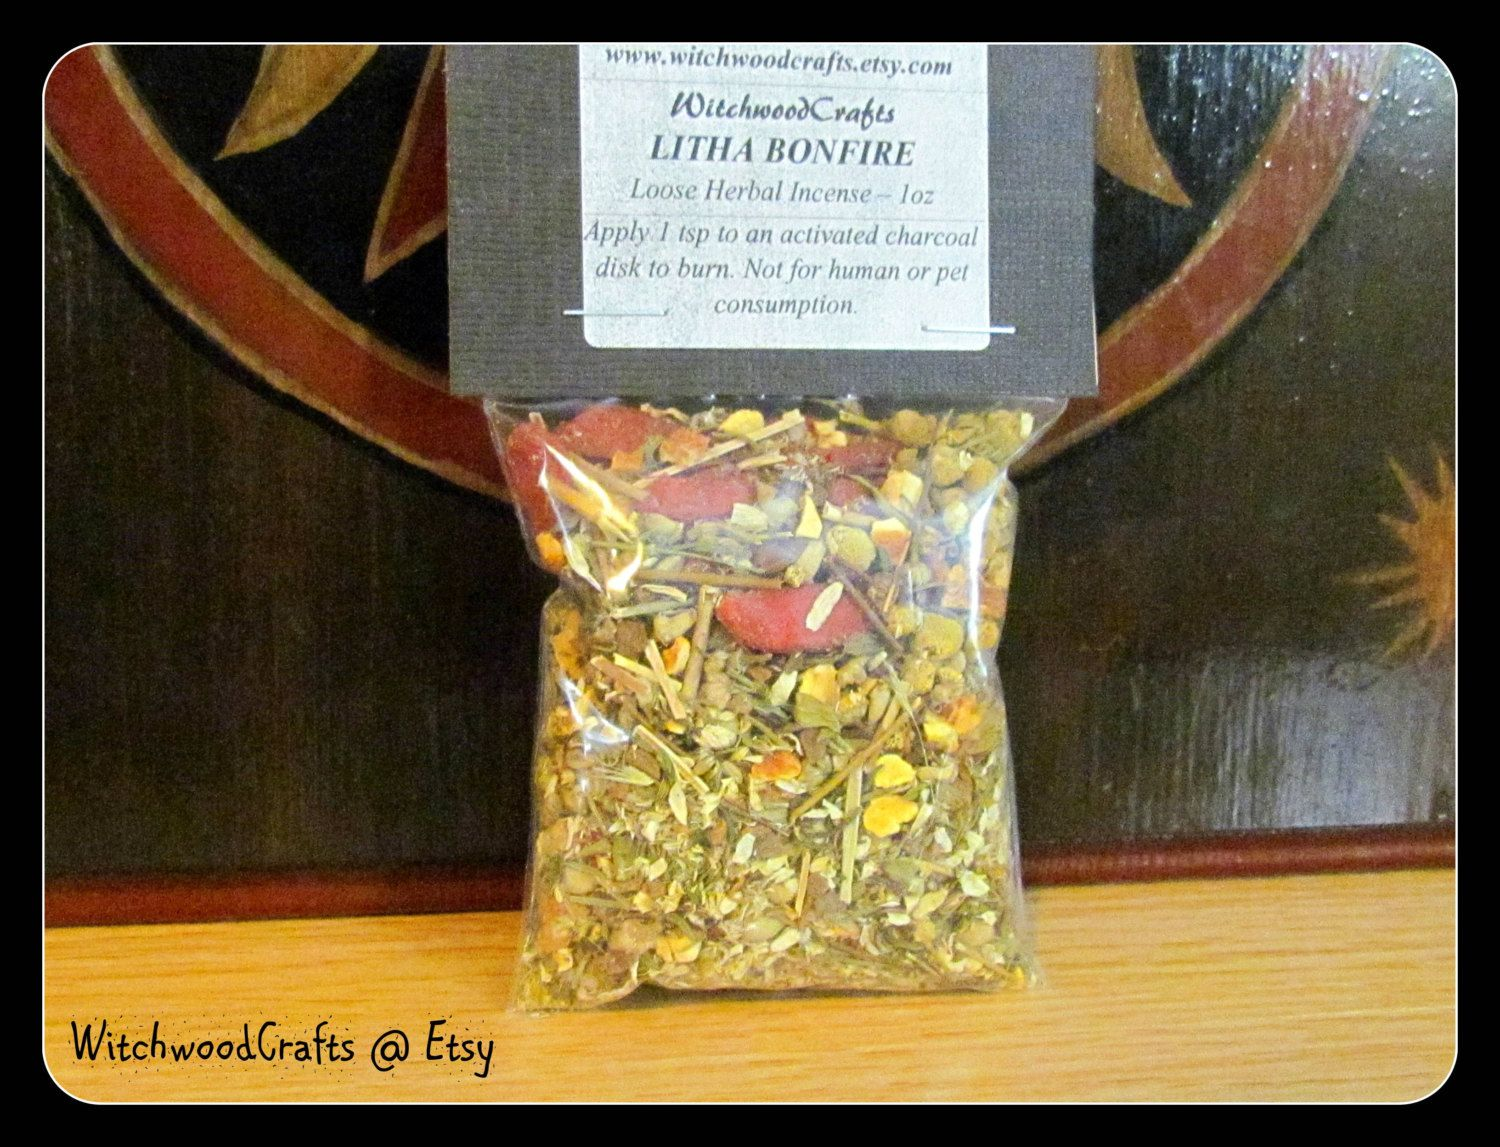 LITHA BONFIRE - Loose Incense Blend - Goji Berries Orange - Cinnamon - Pagan Wicca - Wiccan Witch - Ritual Witchcraft - Worship Altar Shrine by WitchwoodCrafts on Etsy https://www.etsy.com/uk/listing/287118769/litha-bonfire-loose-incense-blend-goji